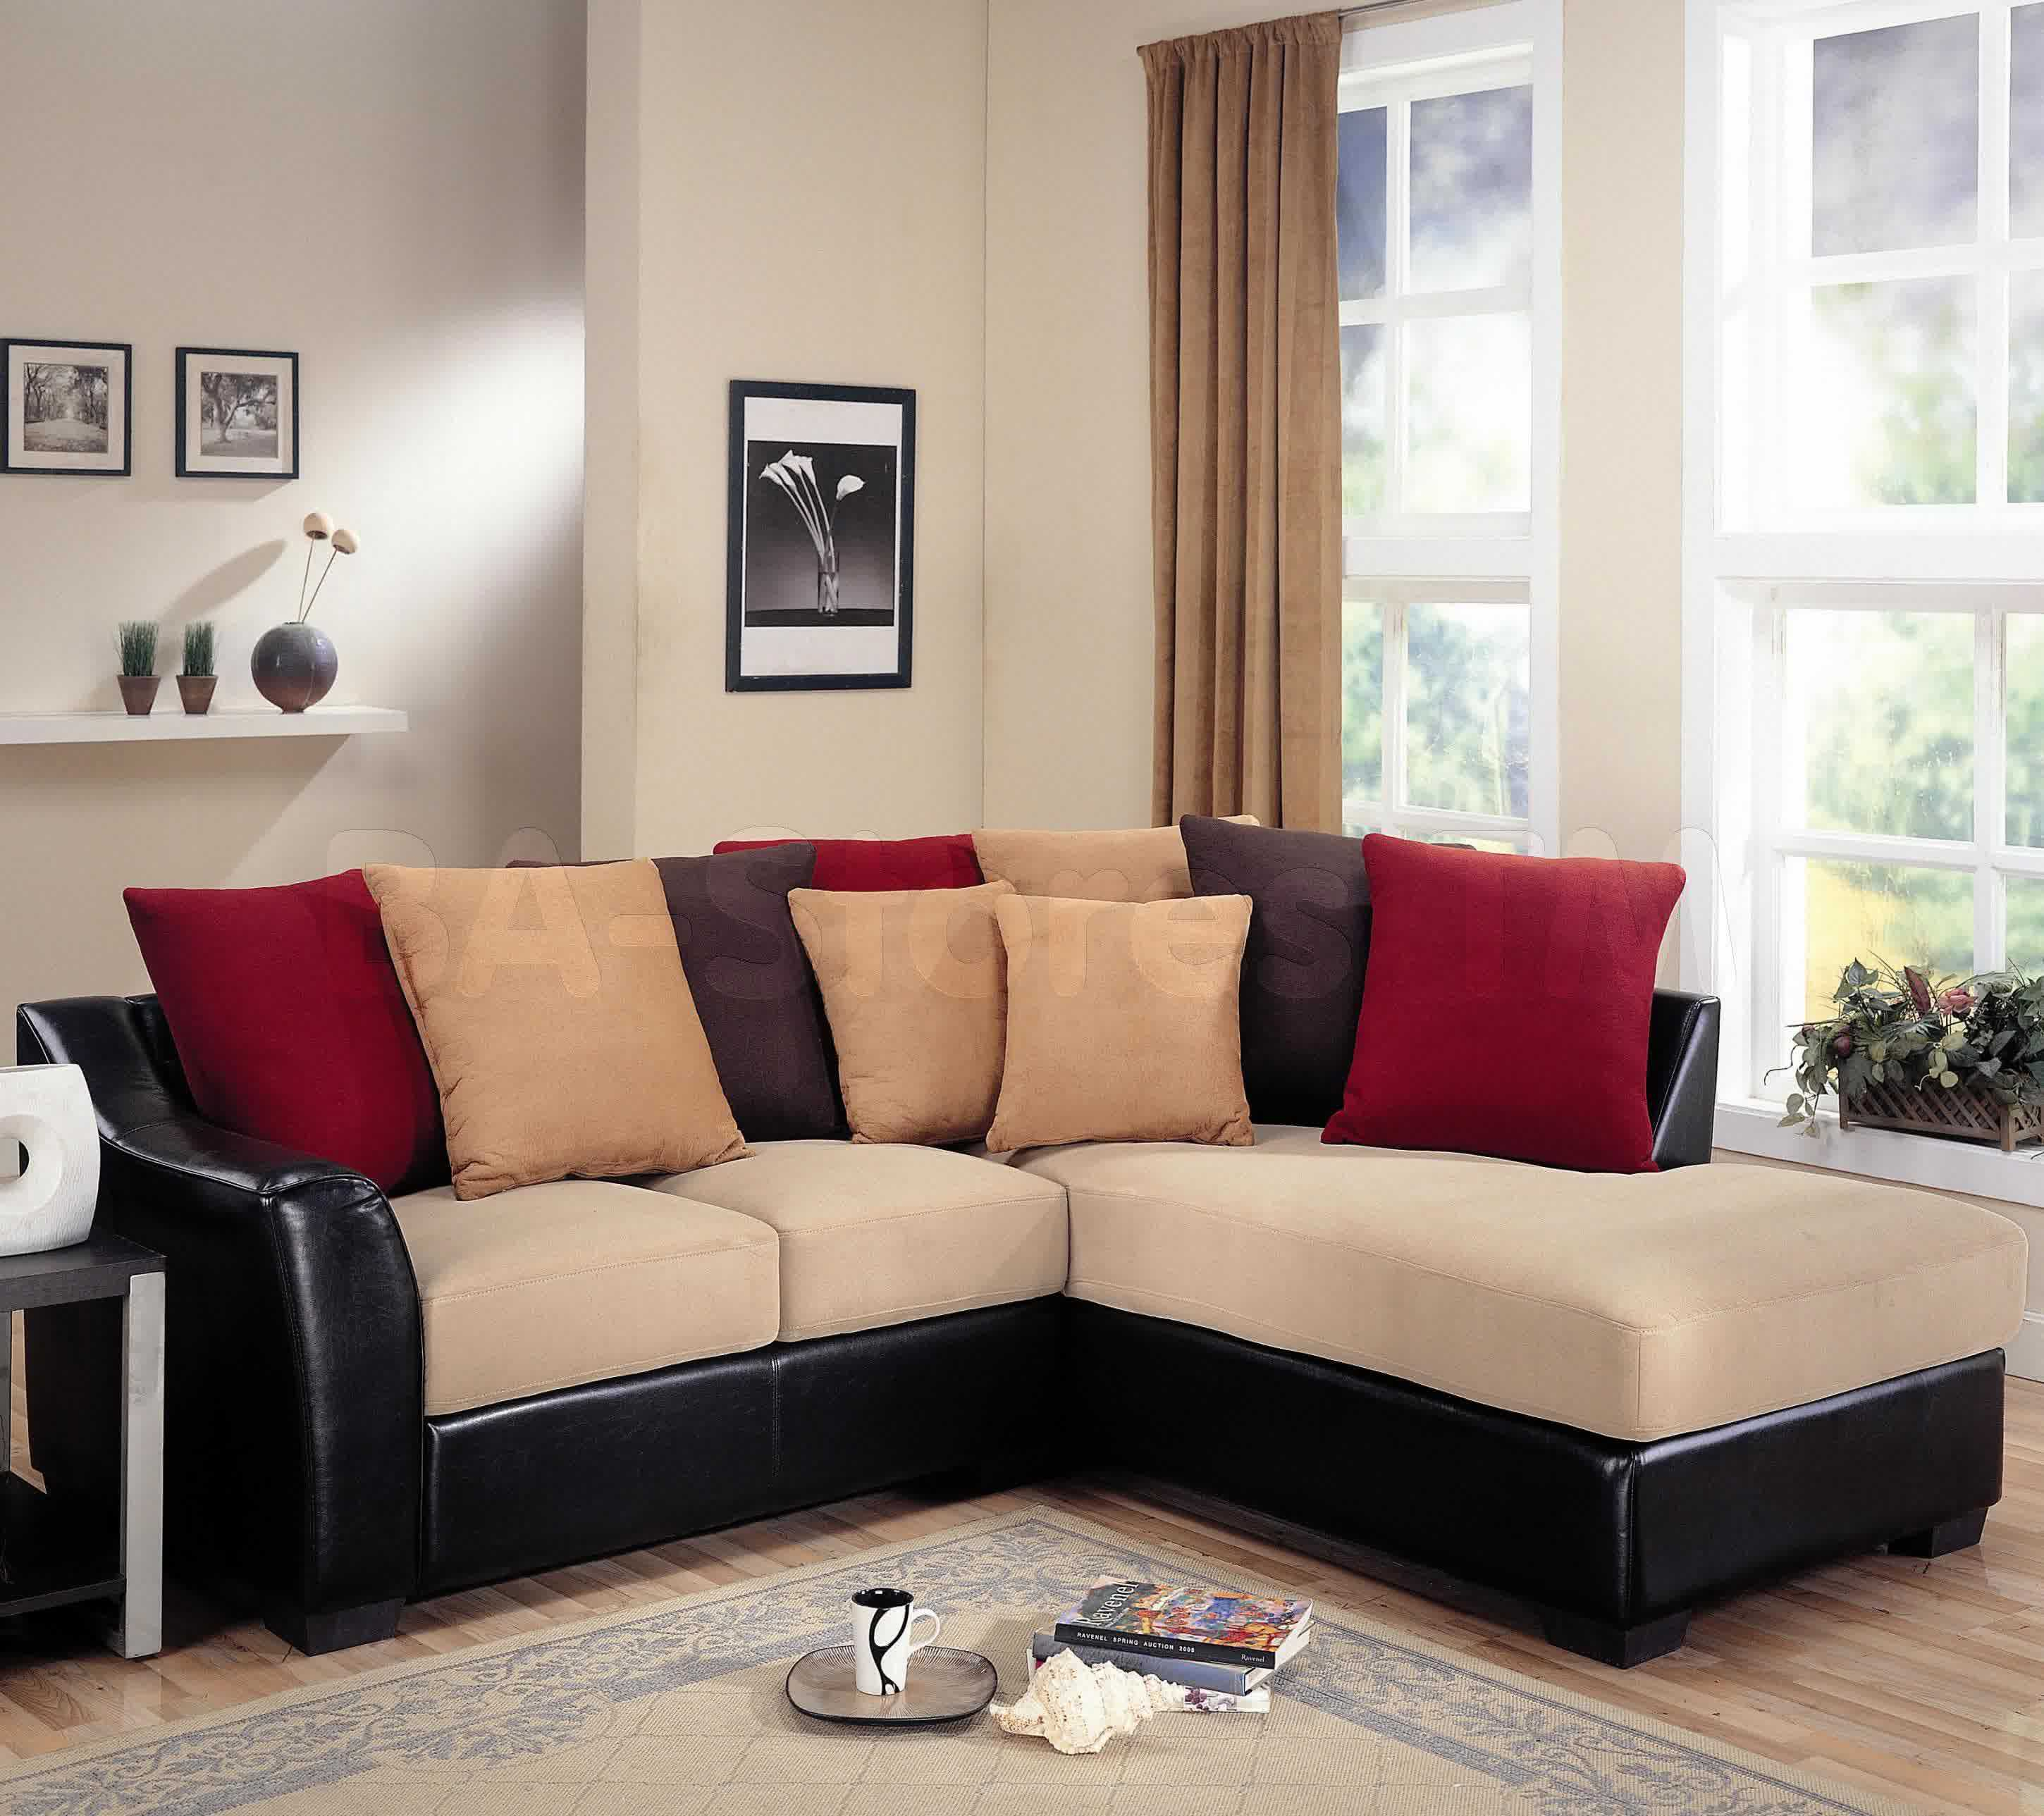 Cheap Living Room Sets Under 300 Rugs Packages Furniture 2018 Also pertaining to Living Room Sets Under 300